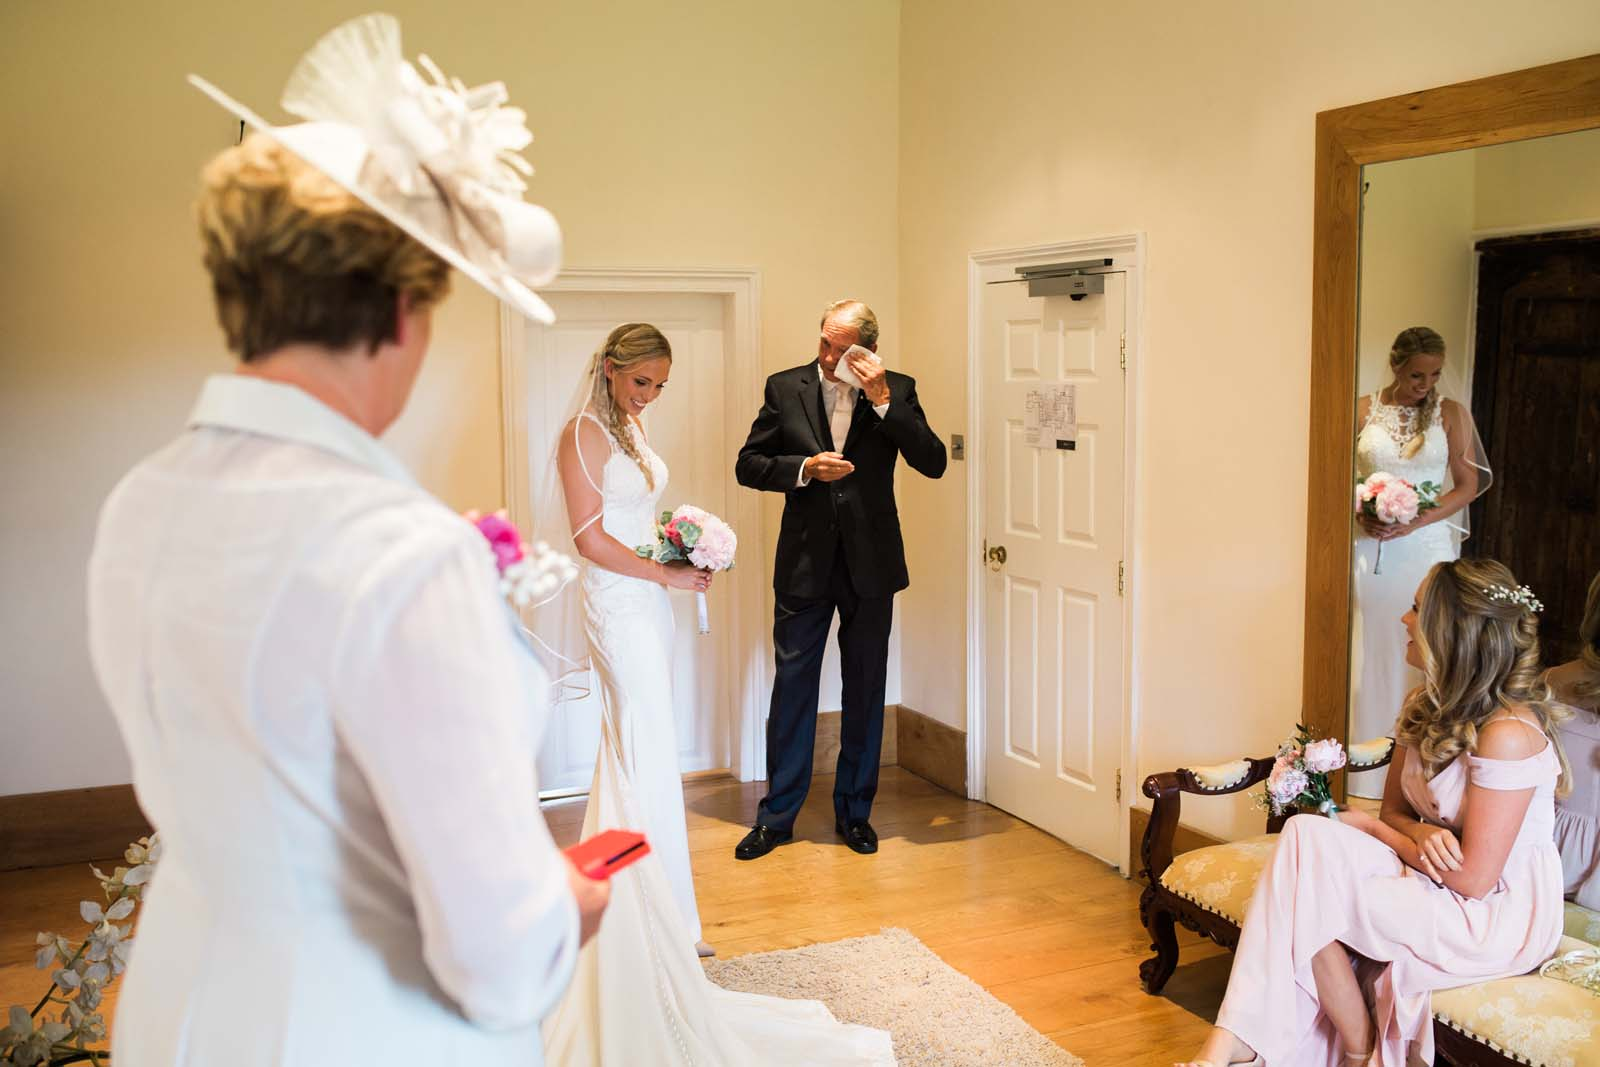 Notley Abbey wedding in Buckinghamshire Father of the Bride getting emotional